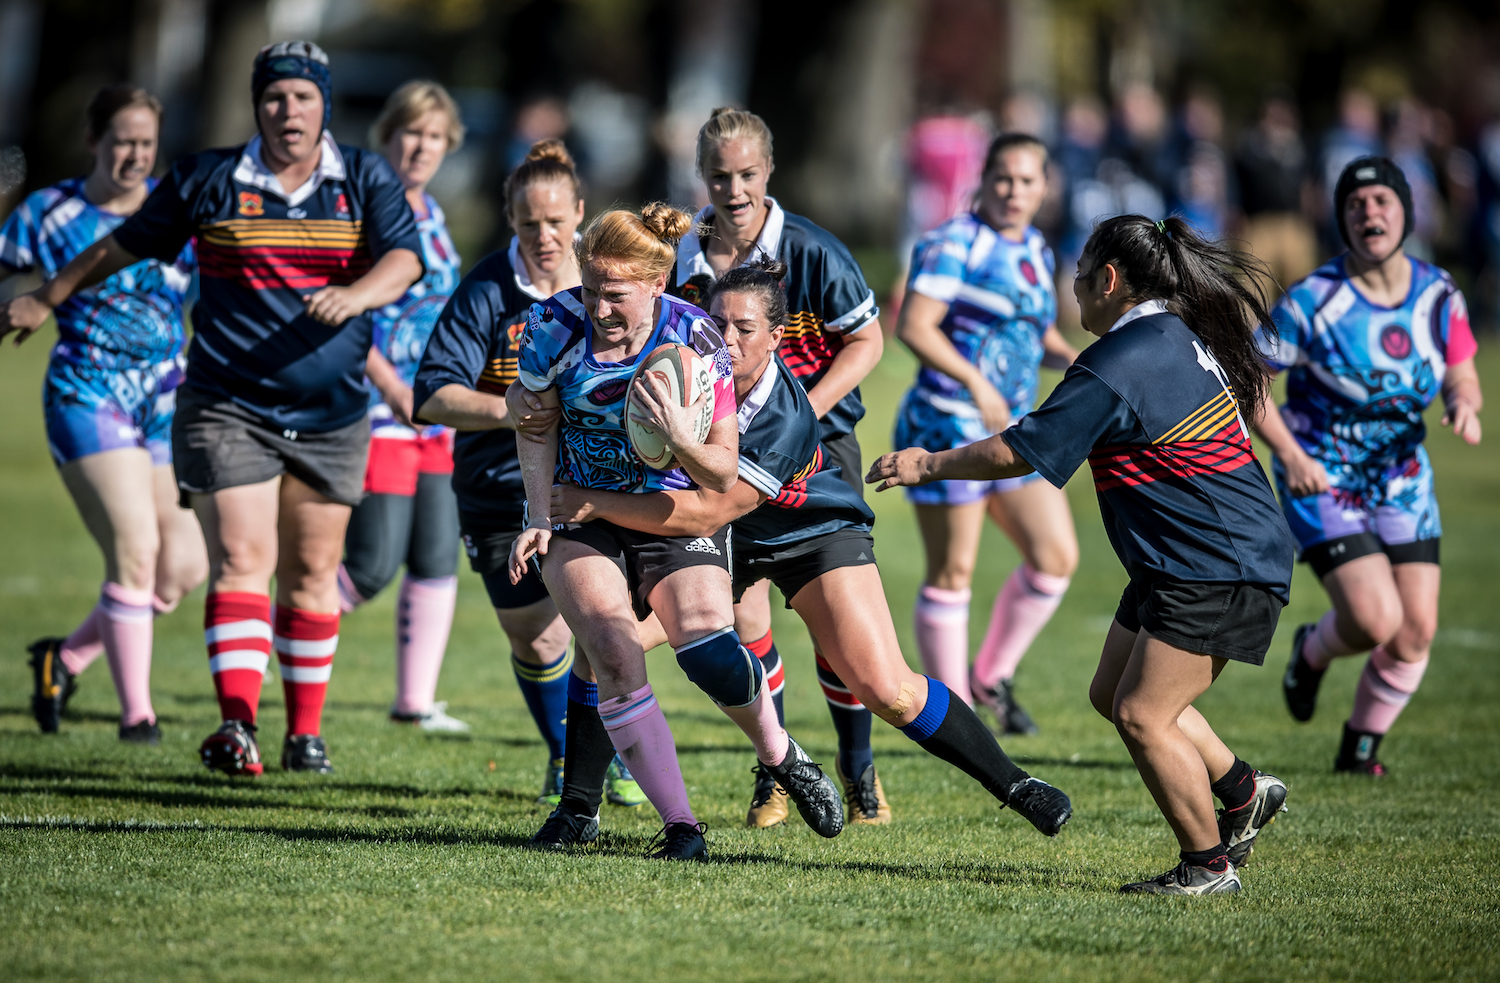 Go Girls! - This isn't just about boys! Girls, get your team together or play in a mixed team. Download brochure.